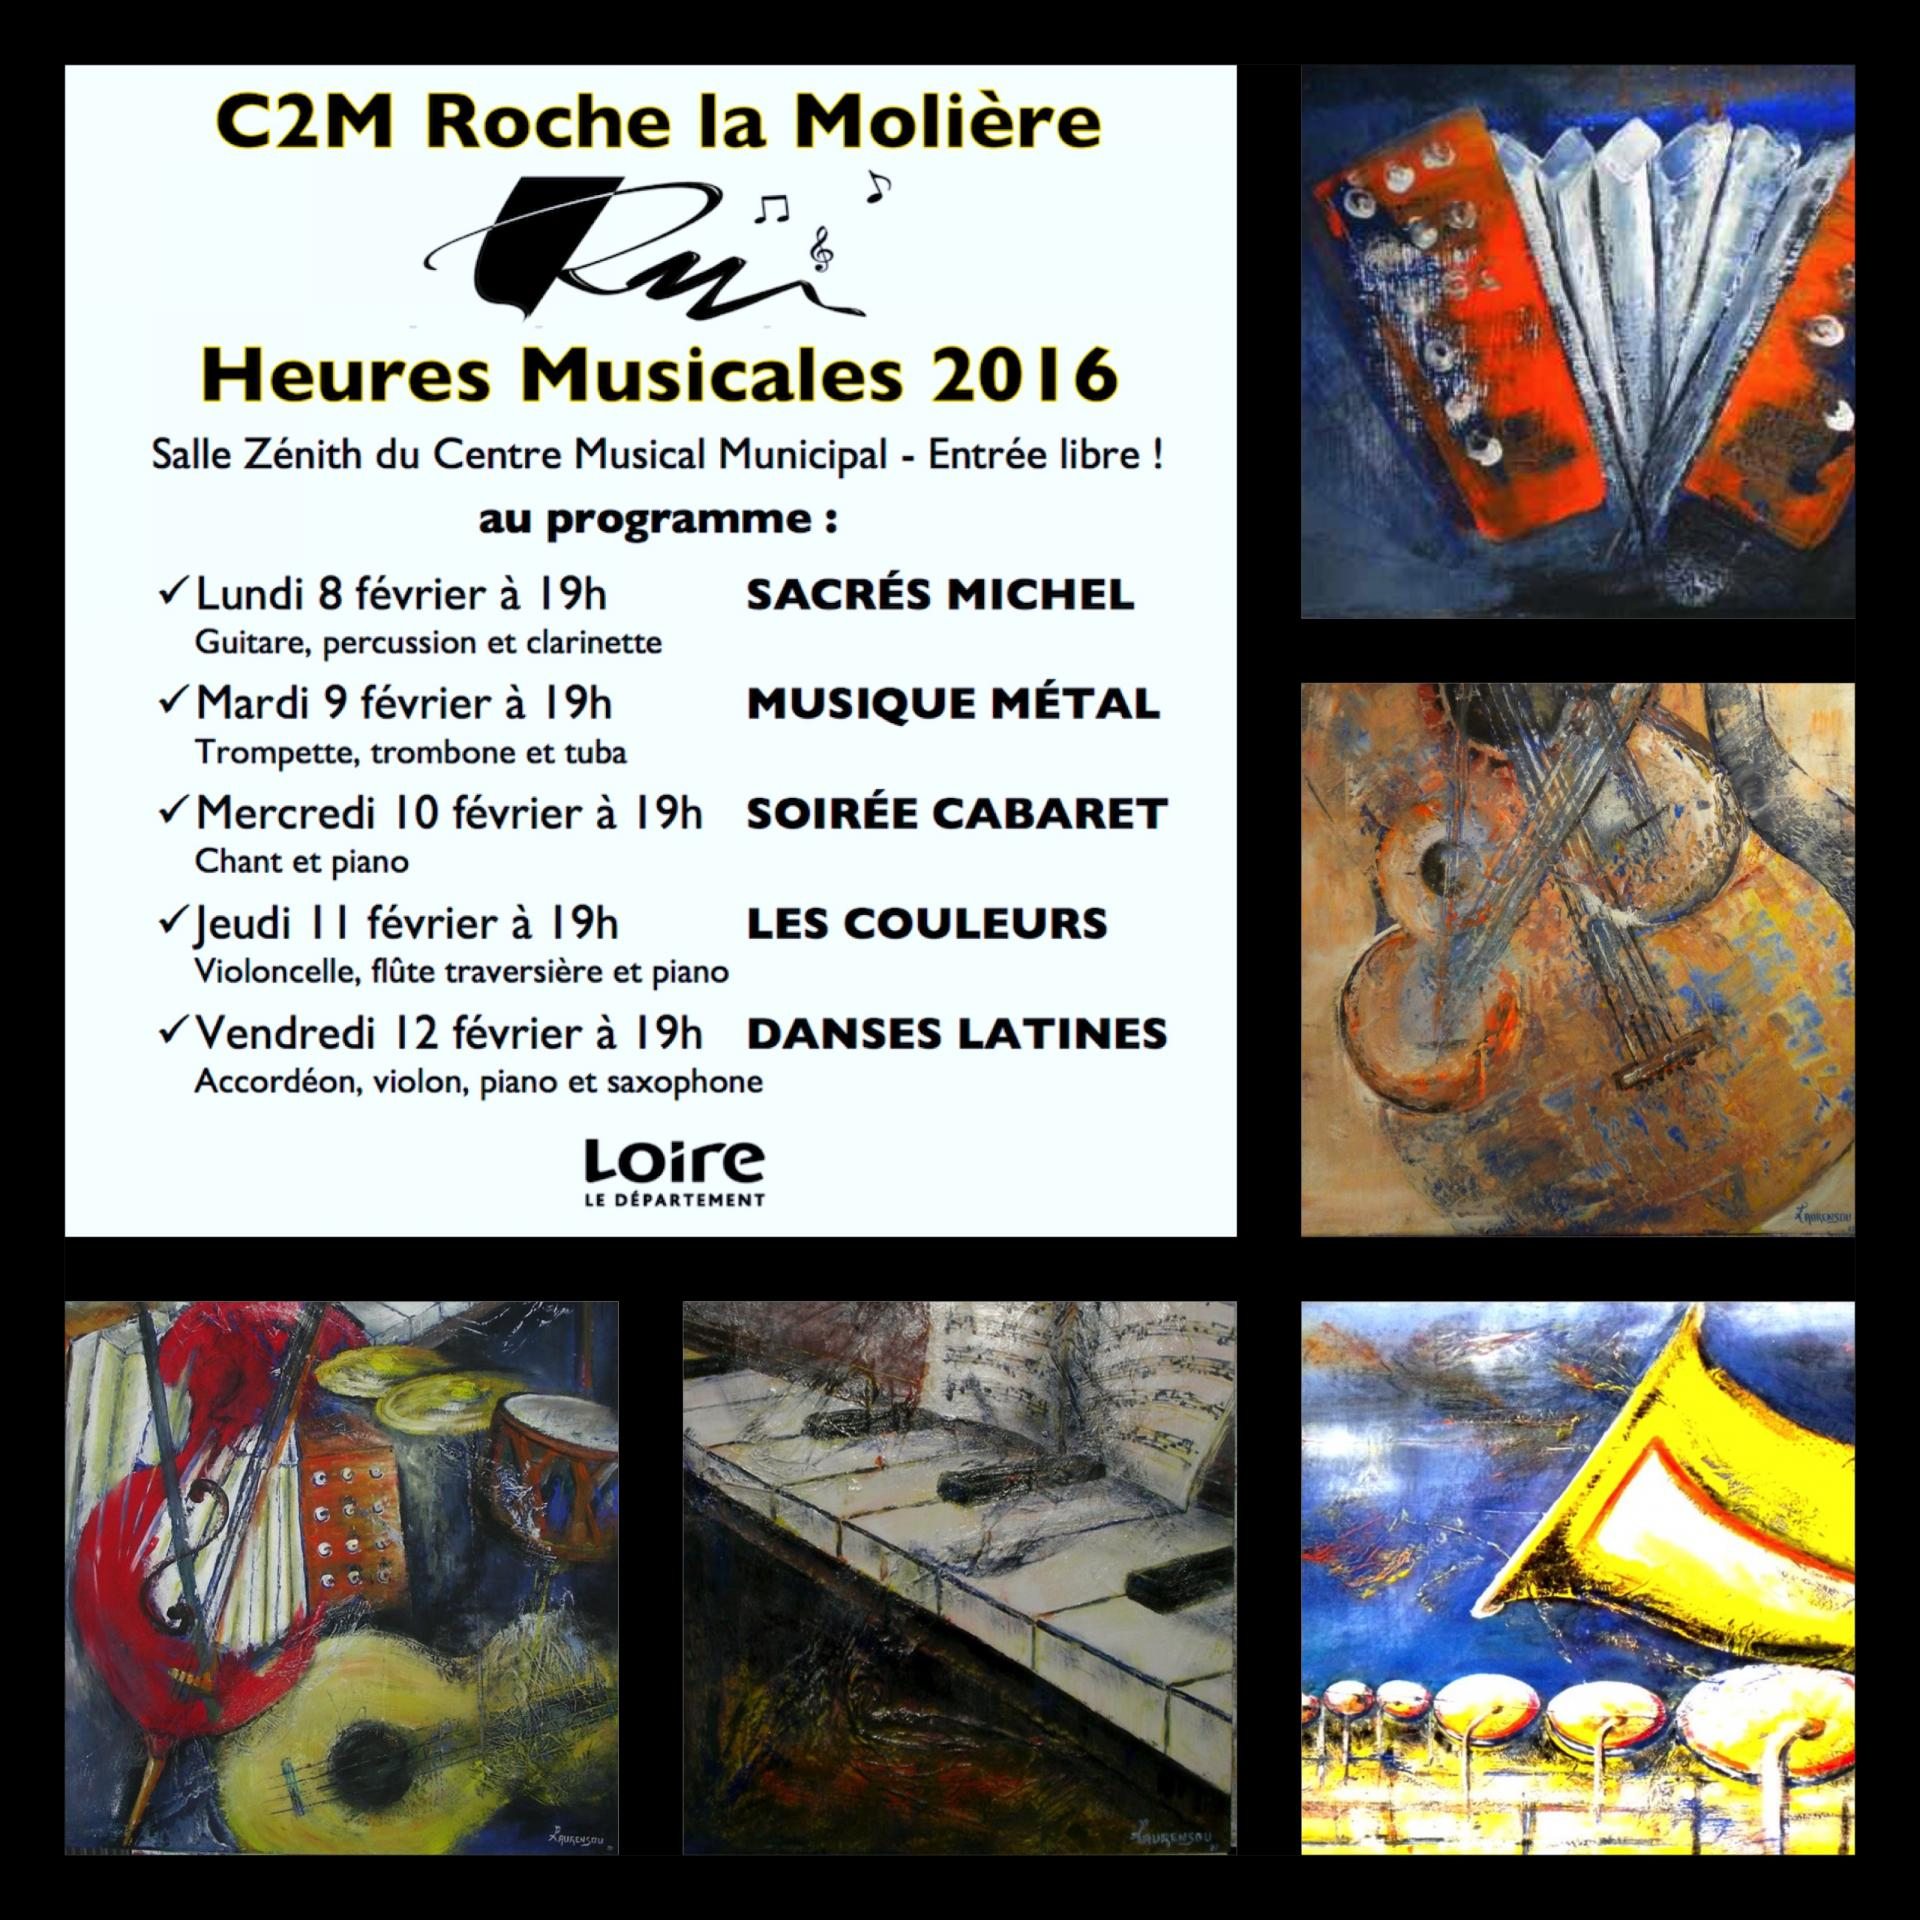 Heures musicales 2016